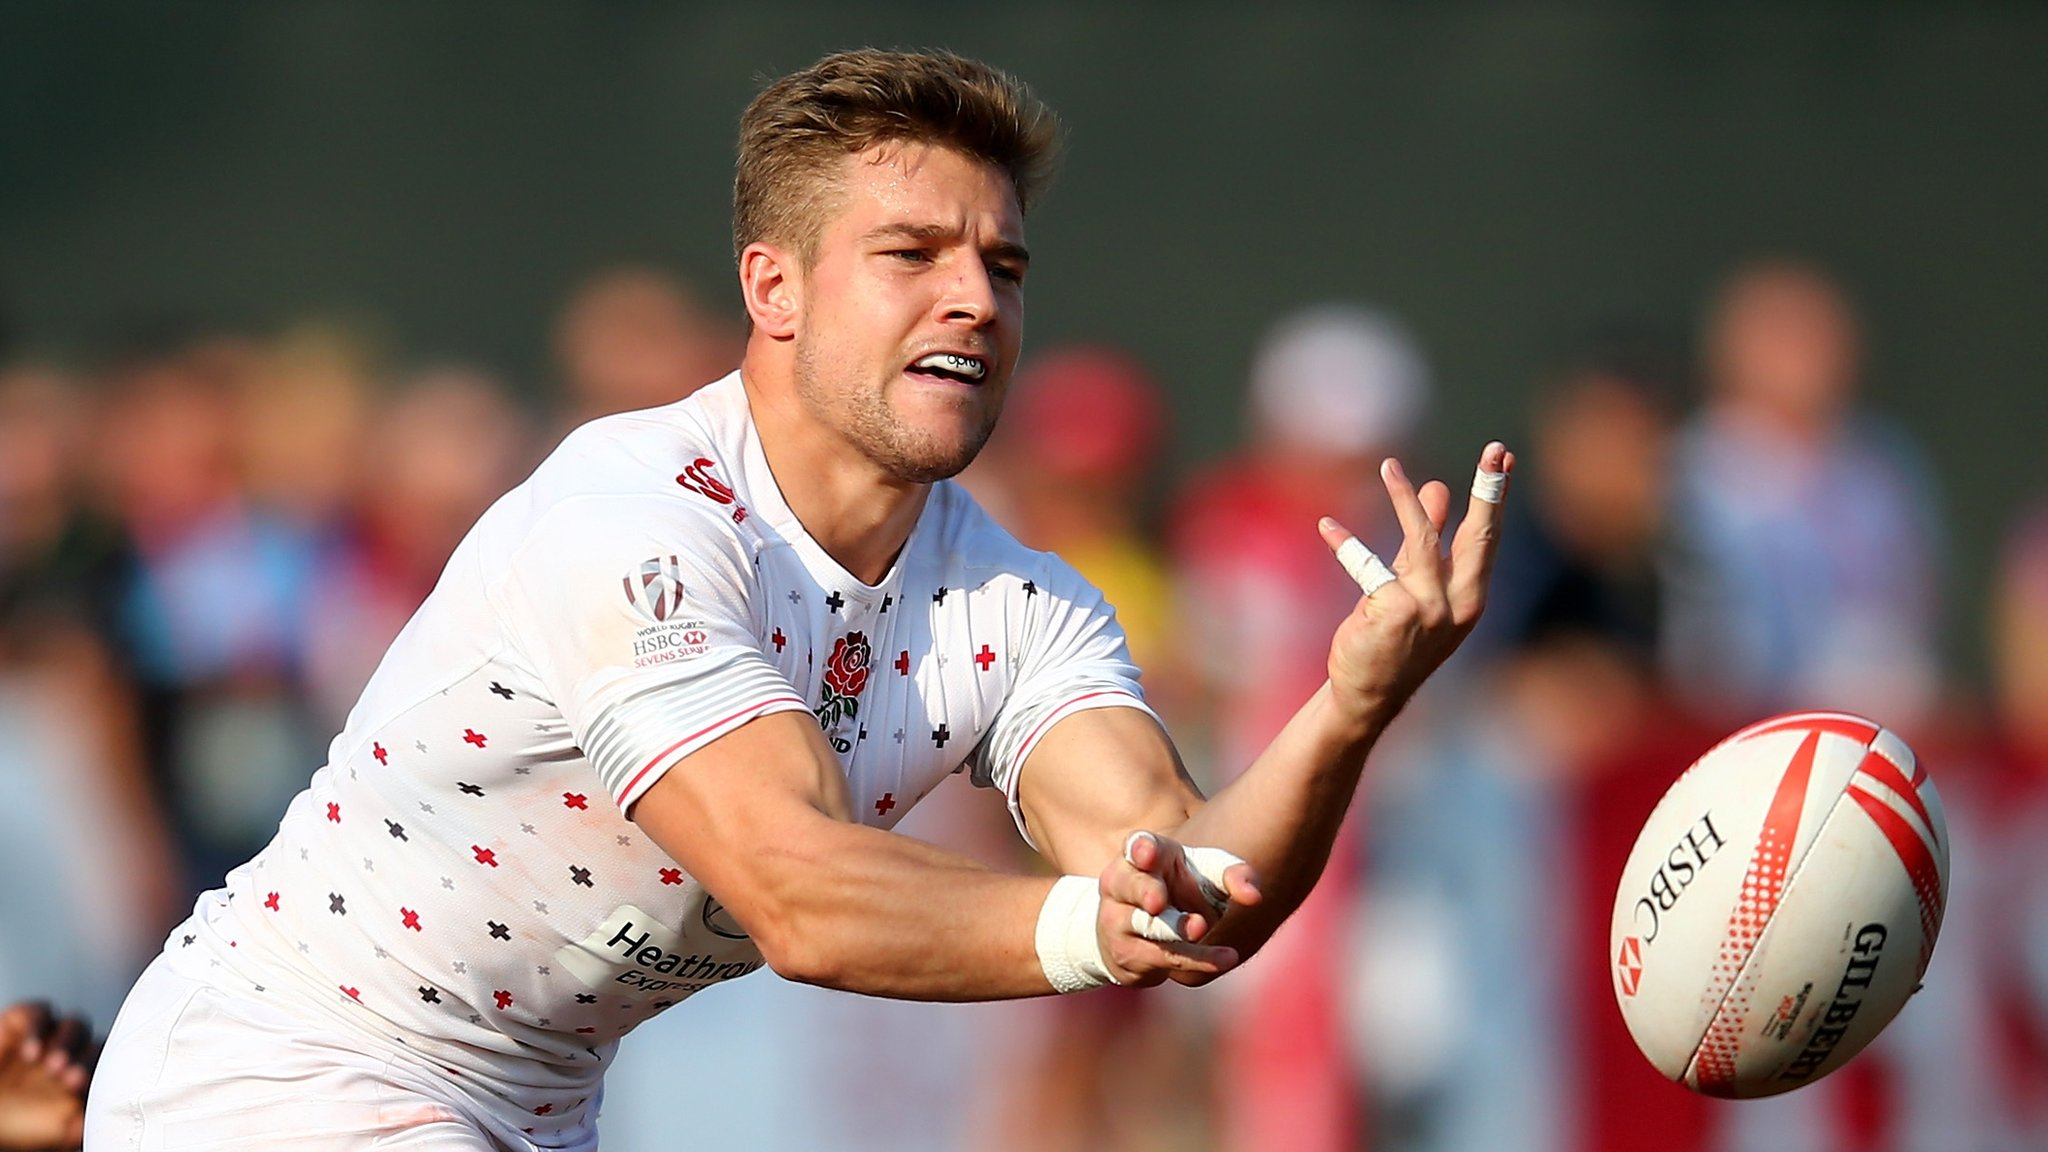 Rugby World Cup Sevens: England name squads for the 2018 World Cup in San Francisco